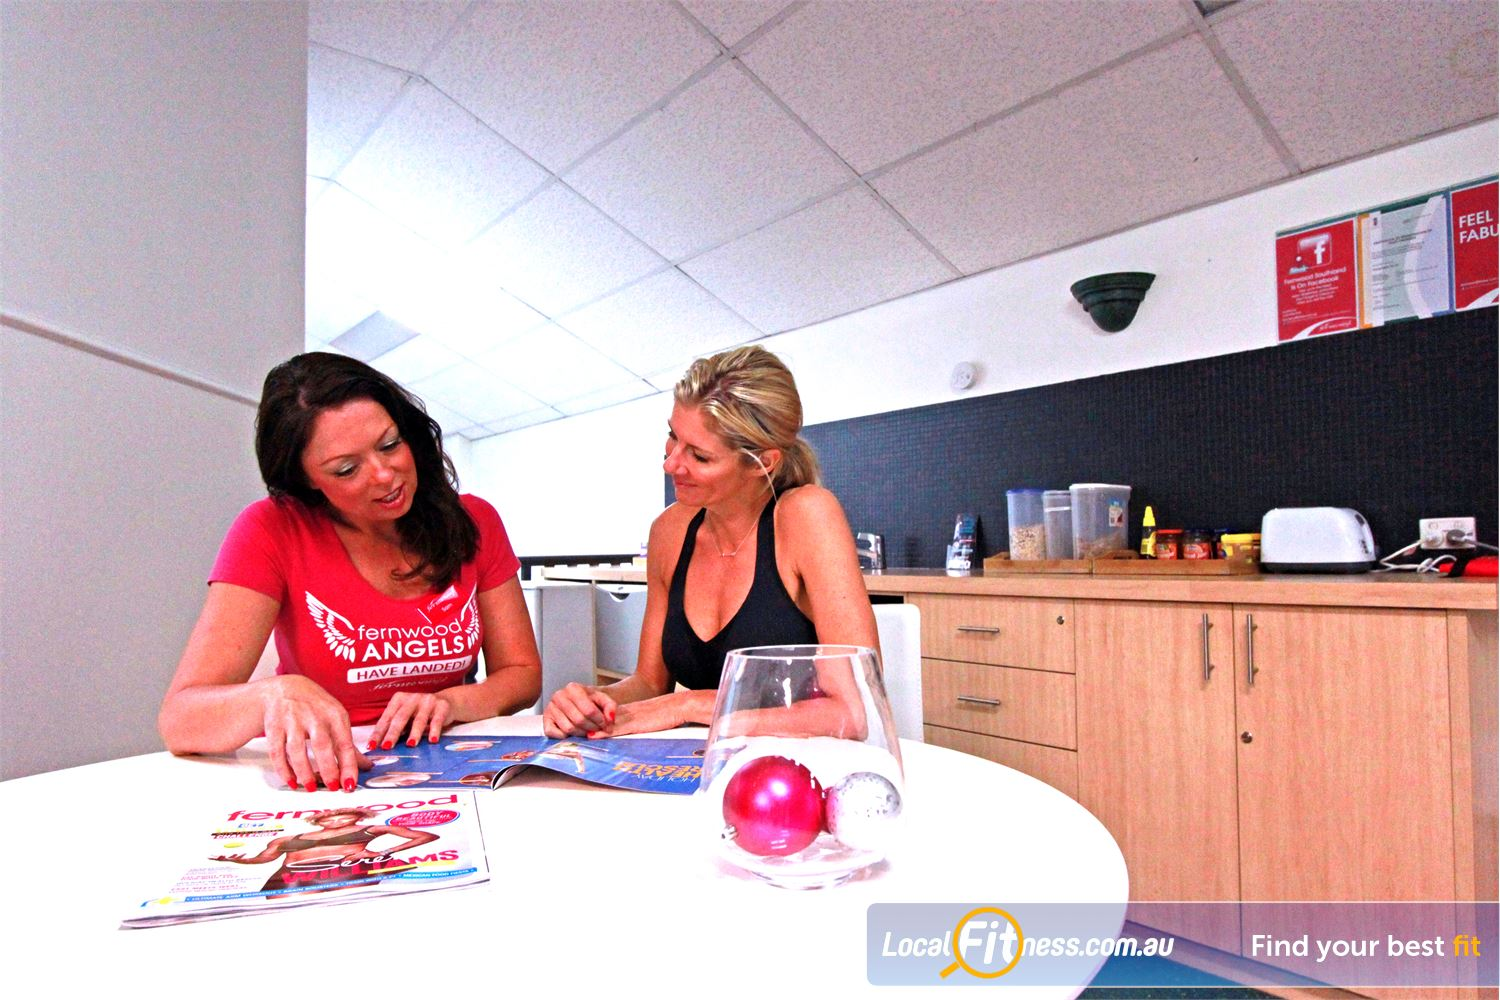 Fernwood Fitness Southland Cheltenham Meet all our wonderful members in our kitchen members area.